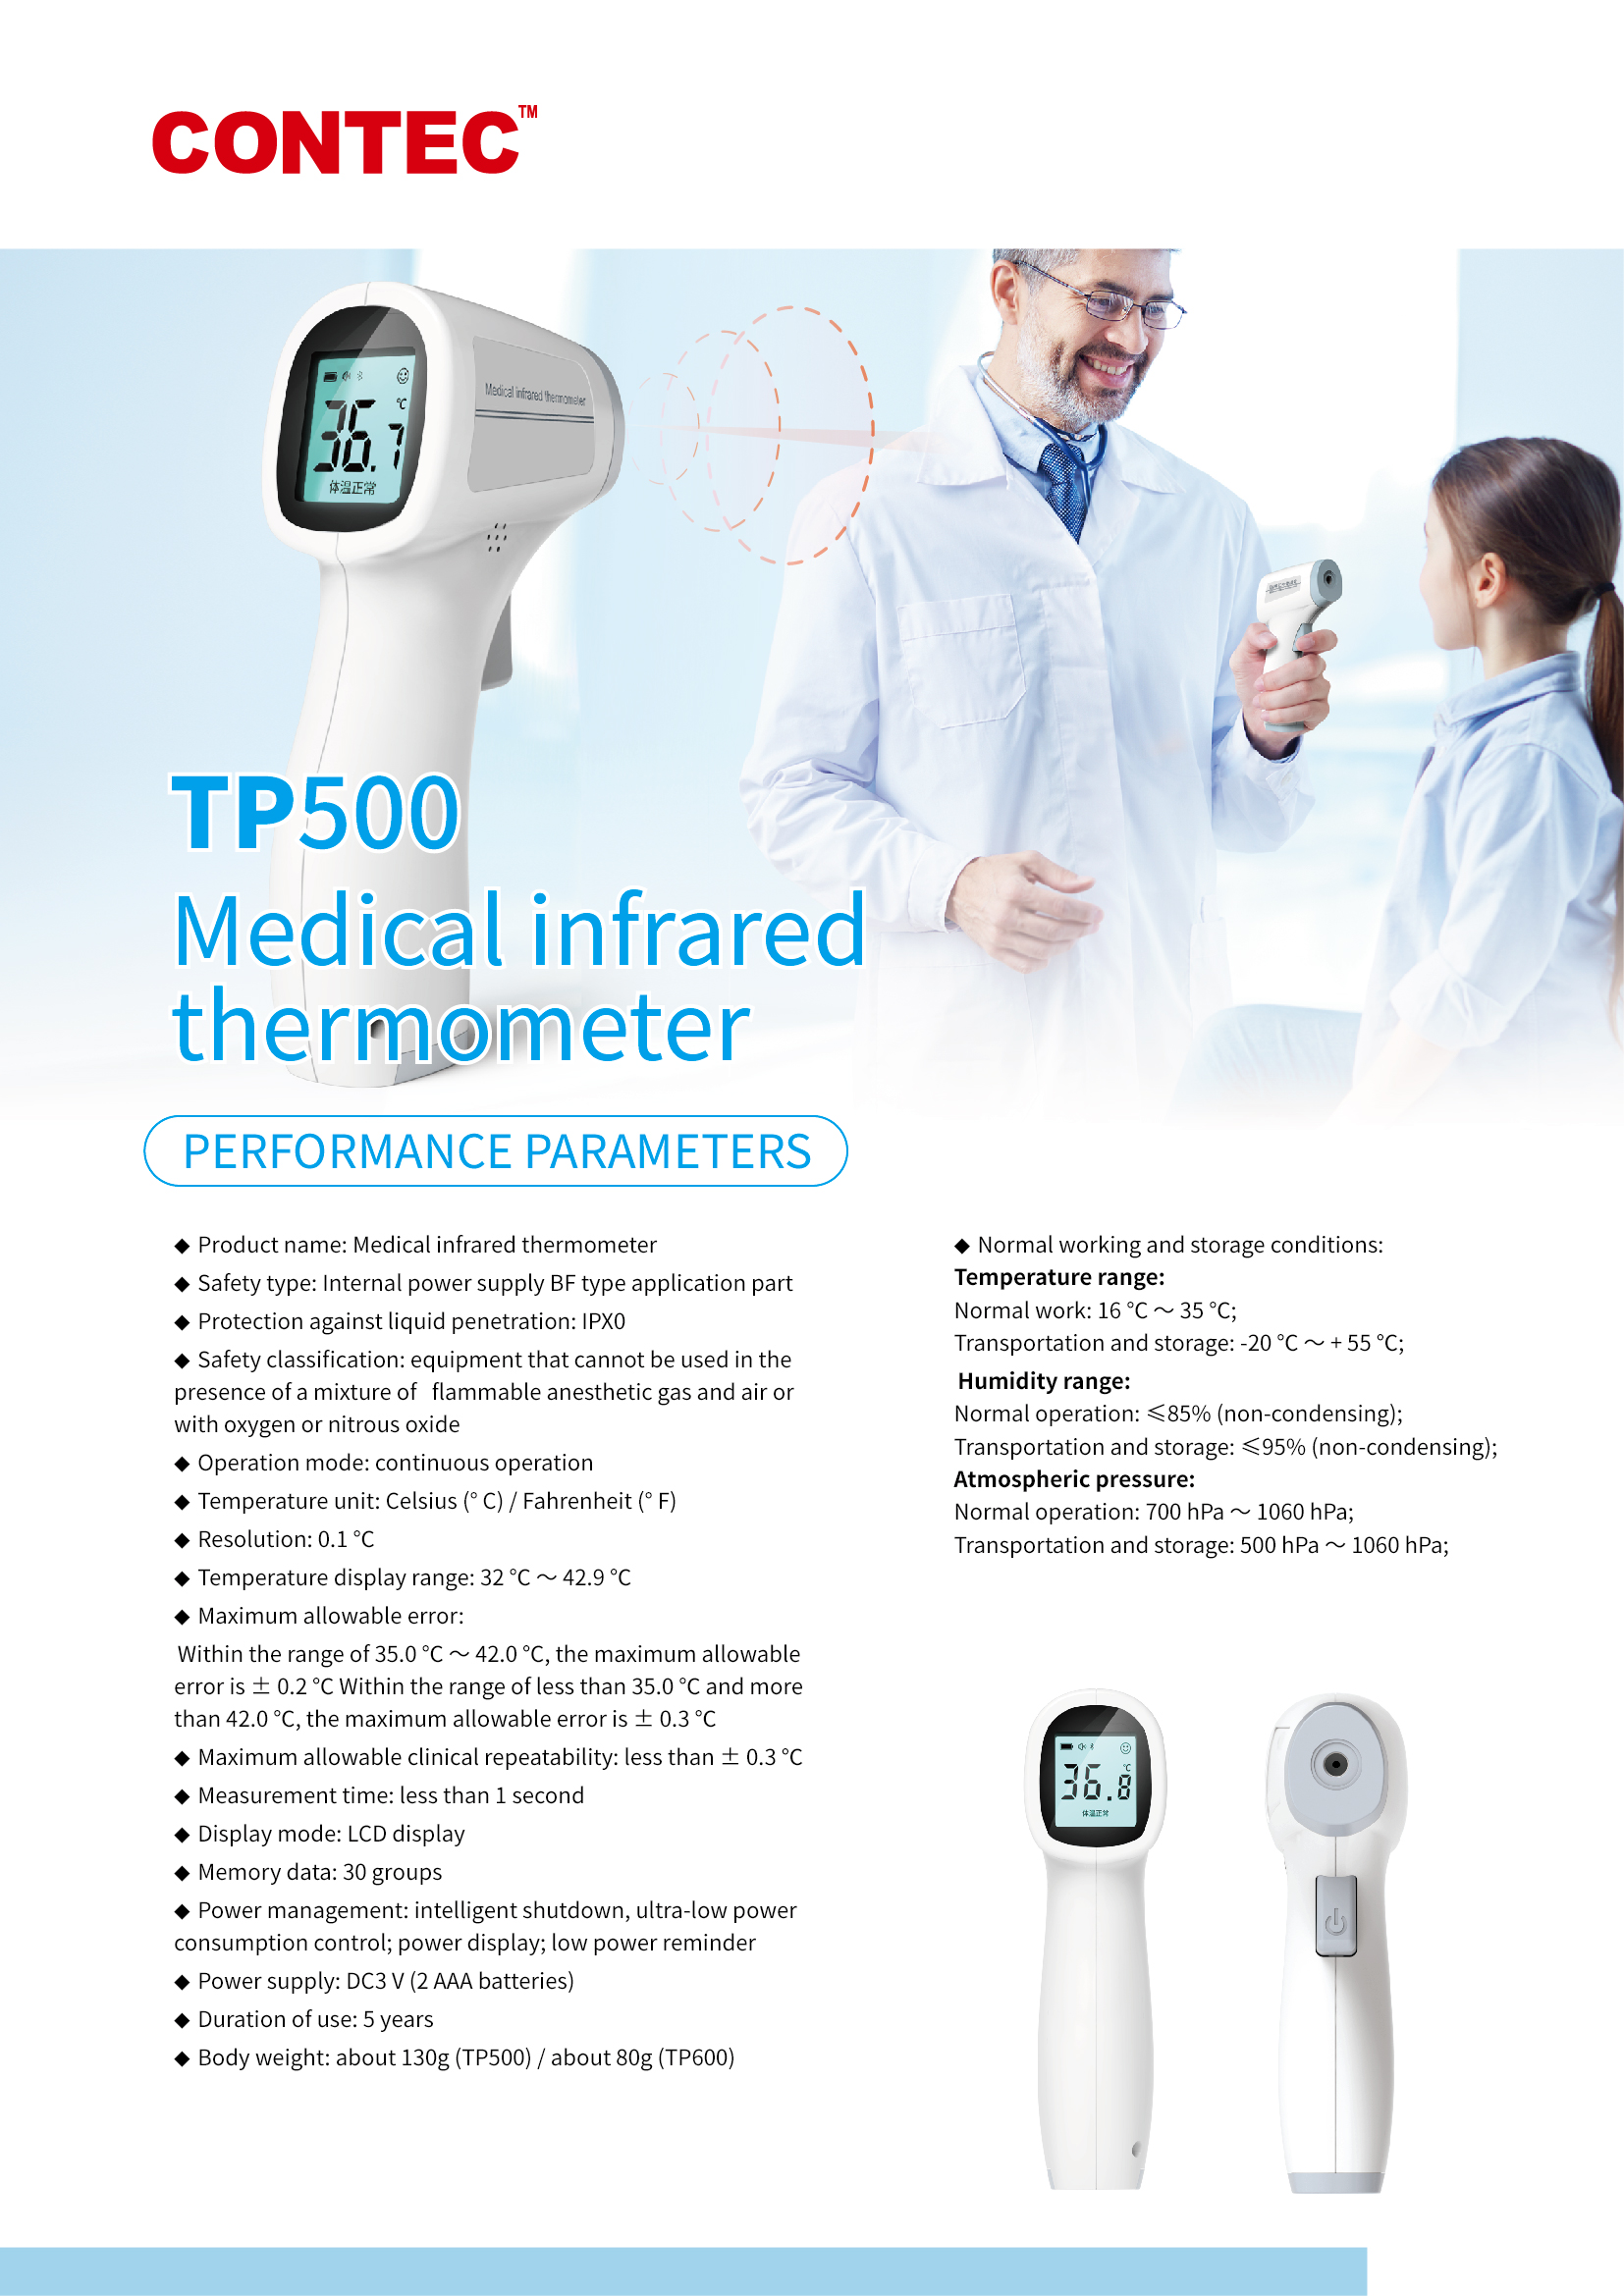 CONTEC TP500 medical infrared thermometer